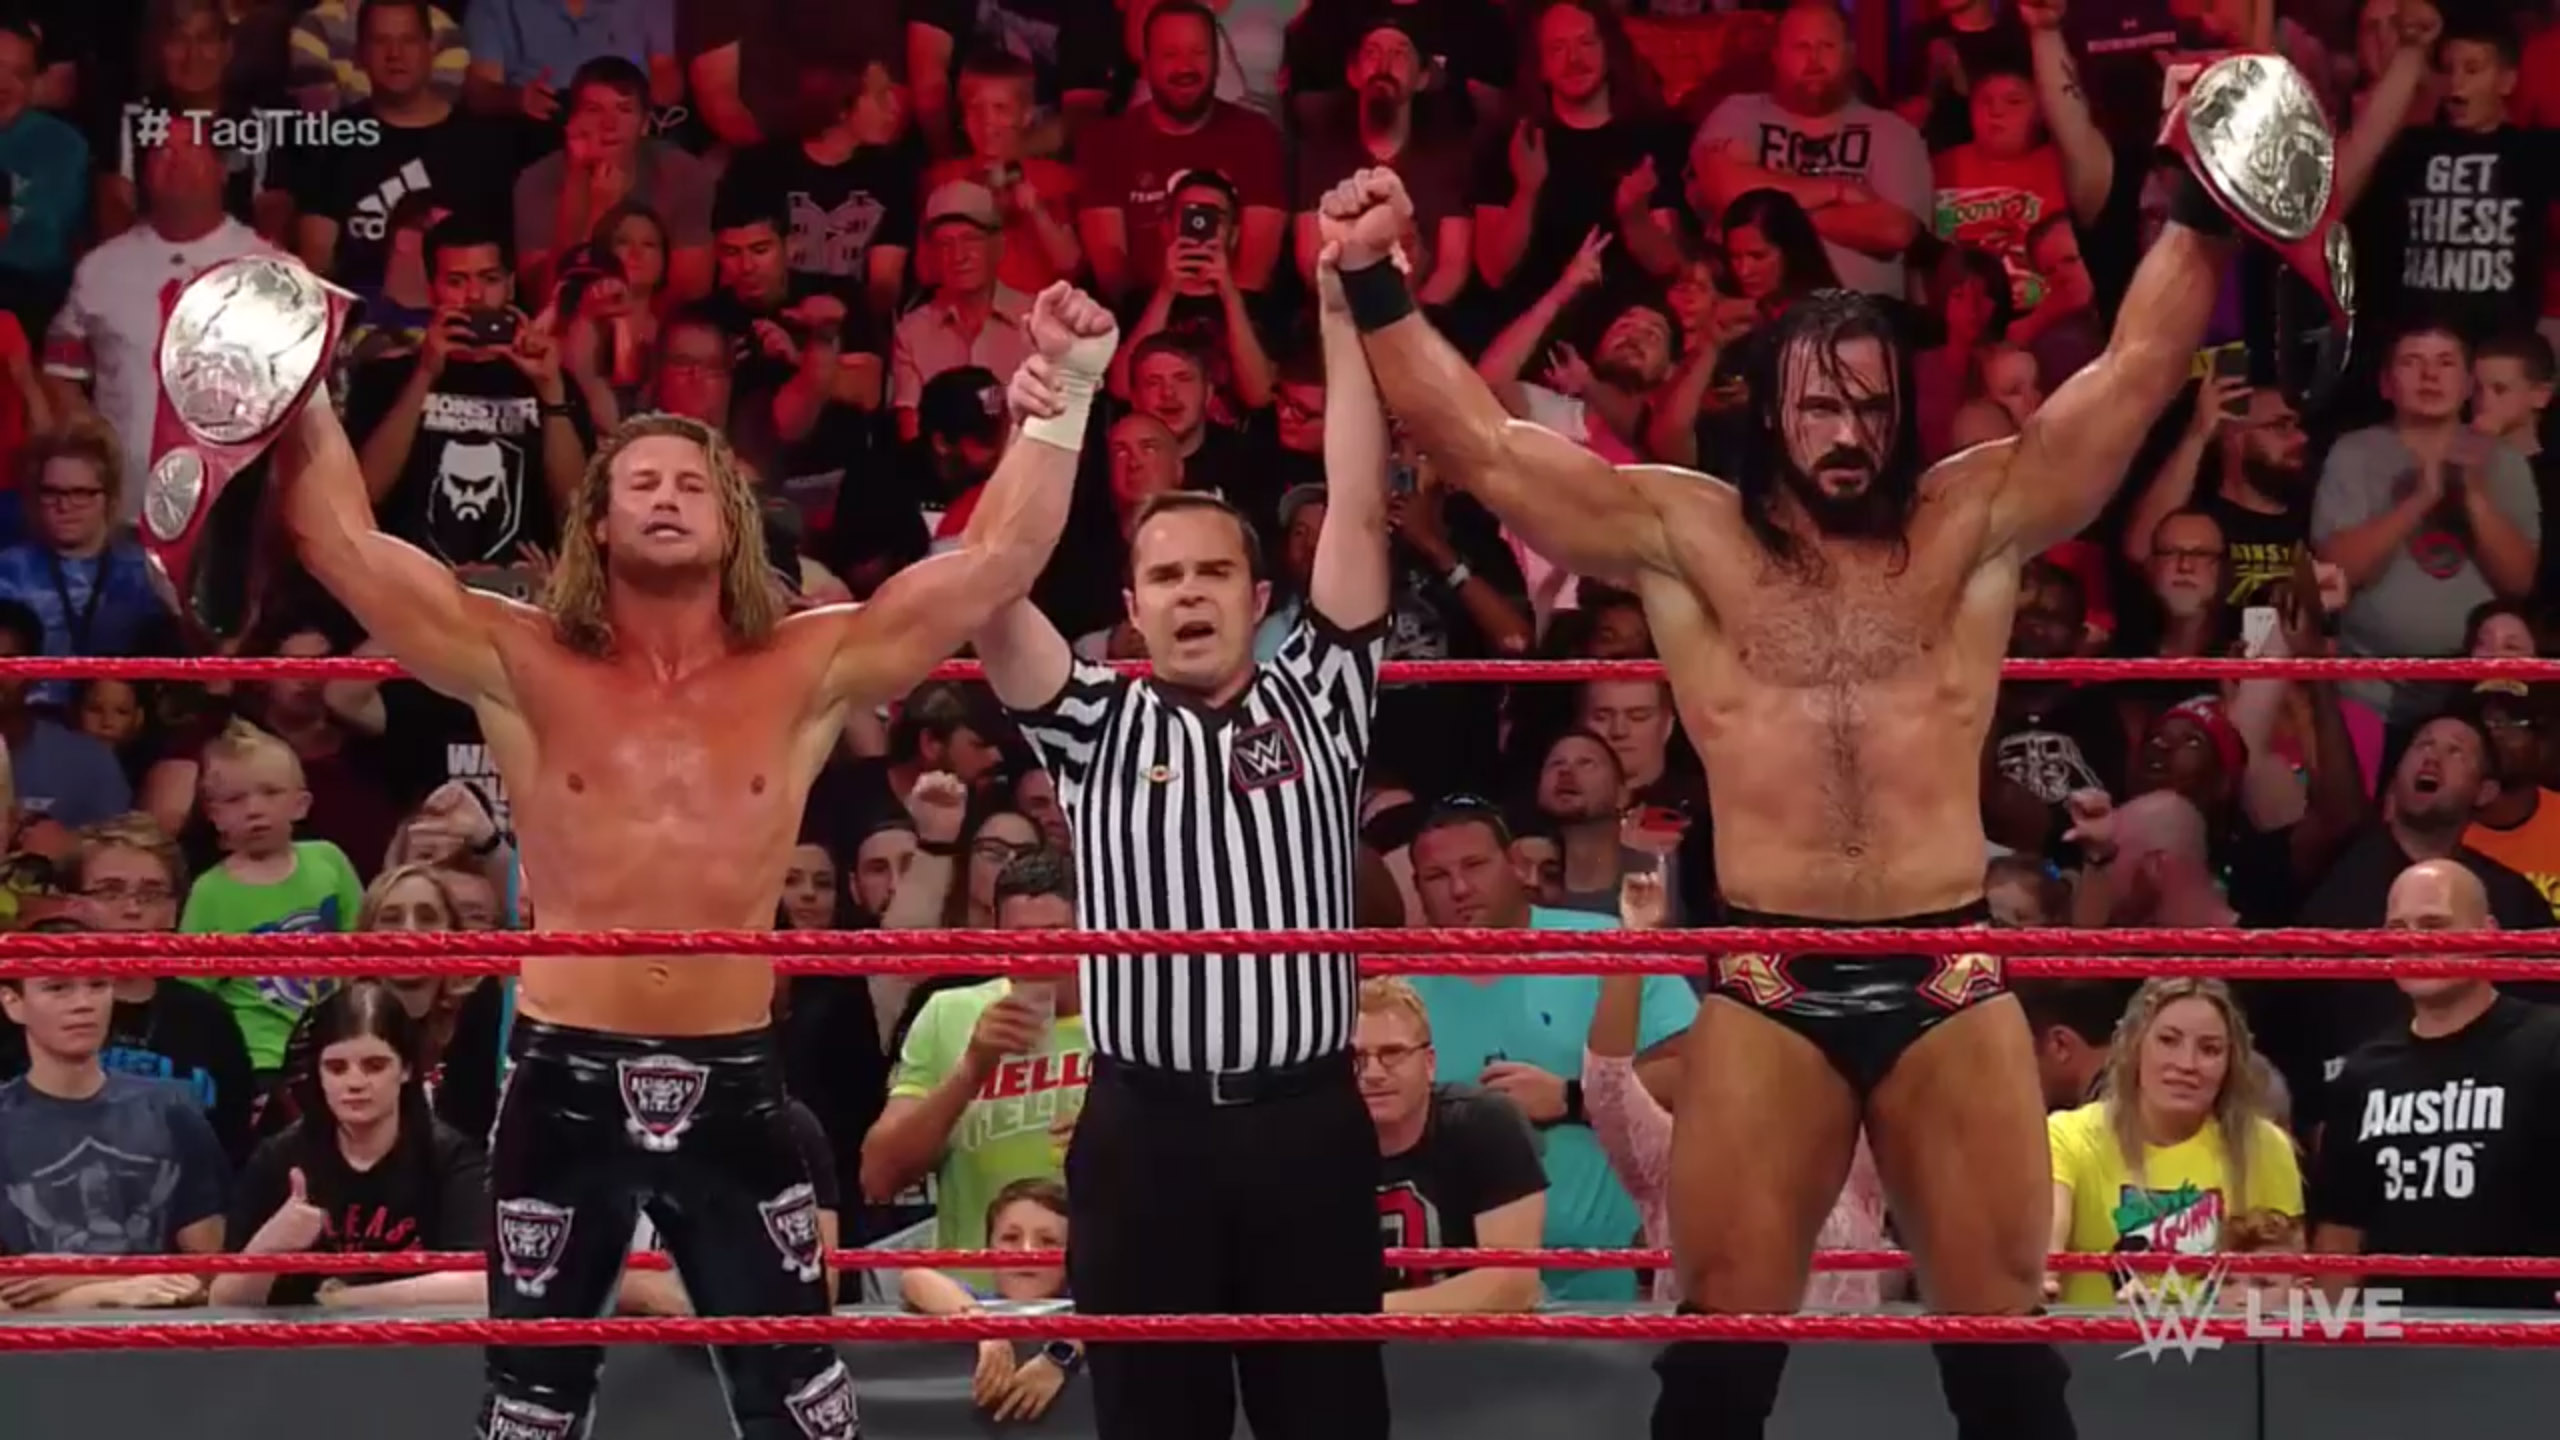 Dolph Ziggler and Drew McIntyre are the new WWE Raw Tag Team Champions